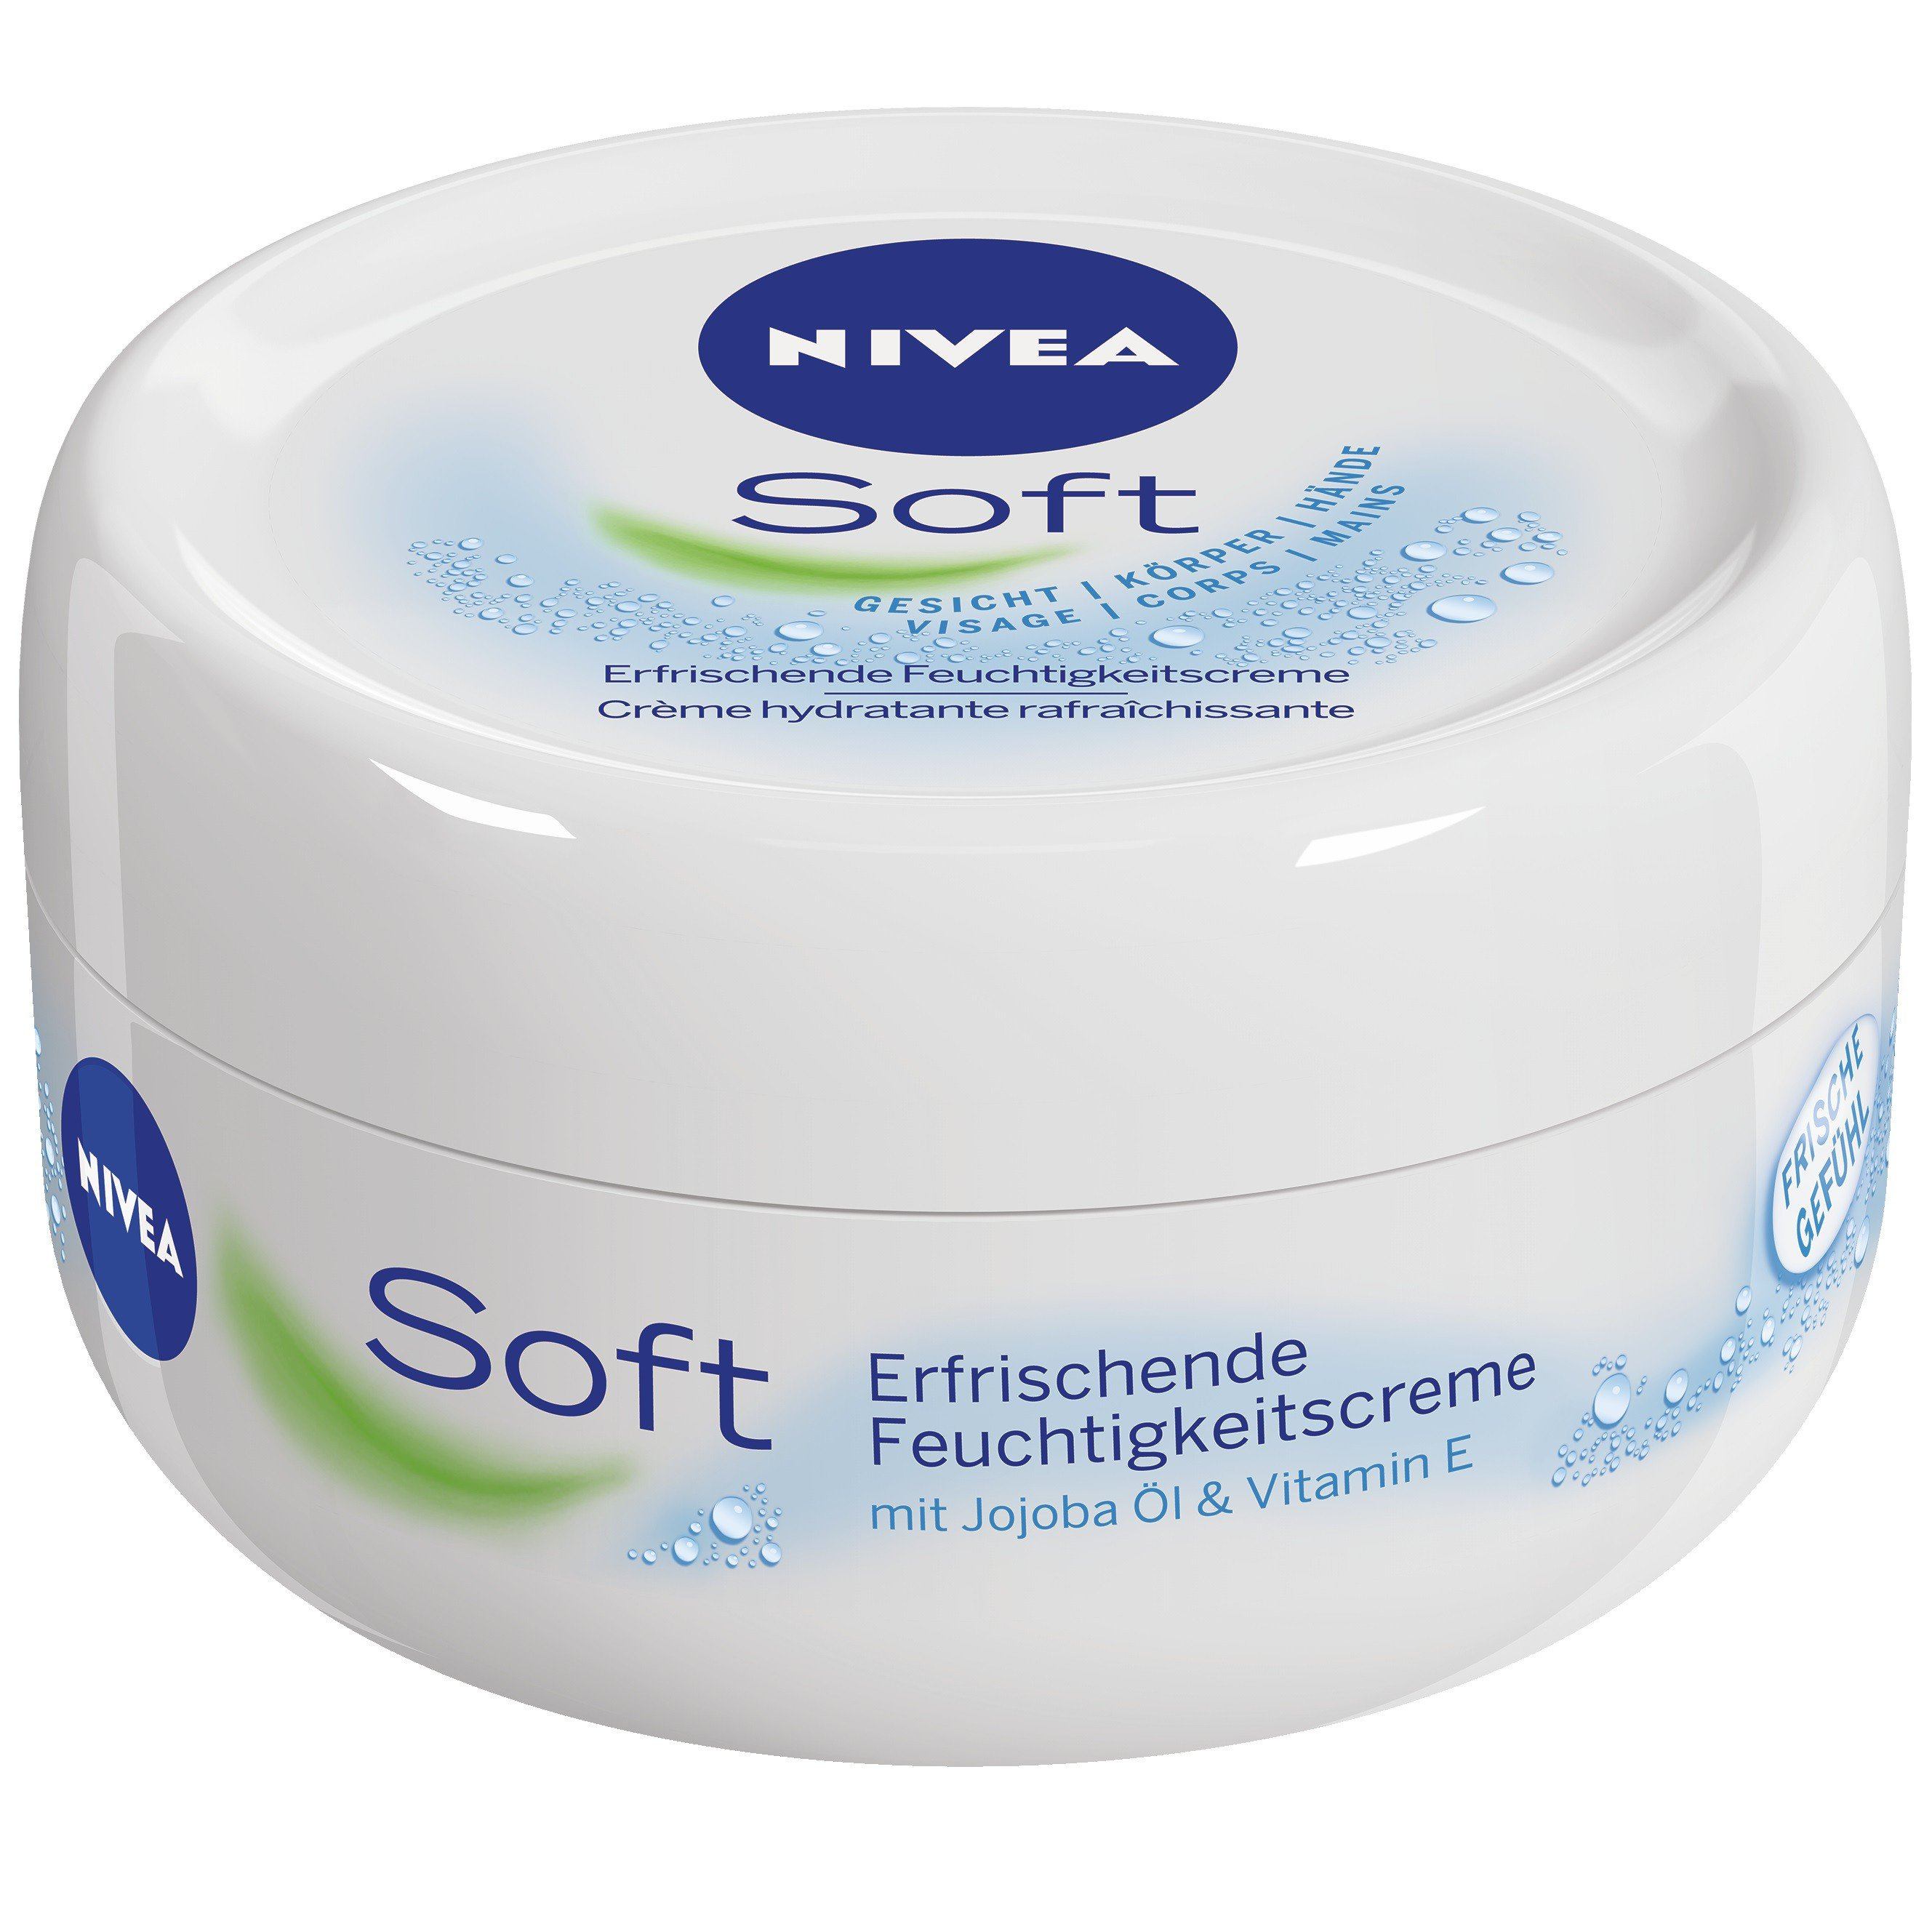 nivea soft hautpflege creme 200 ml dose online kaufen. Black Bedroom Furniture Sets. Home Design Ideas